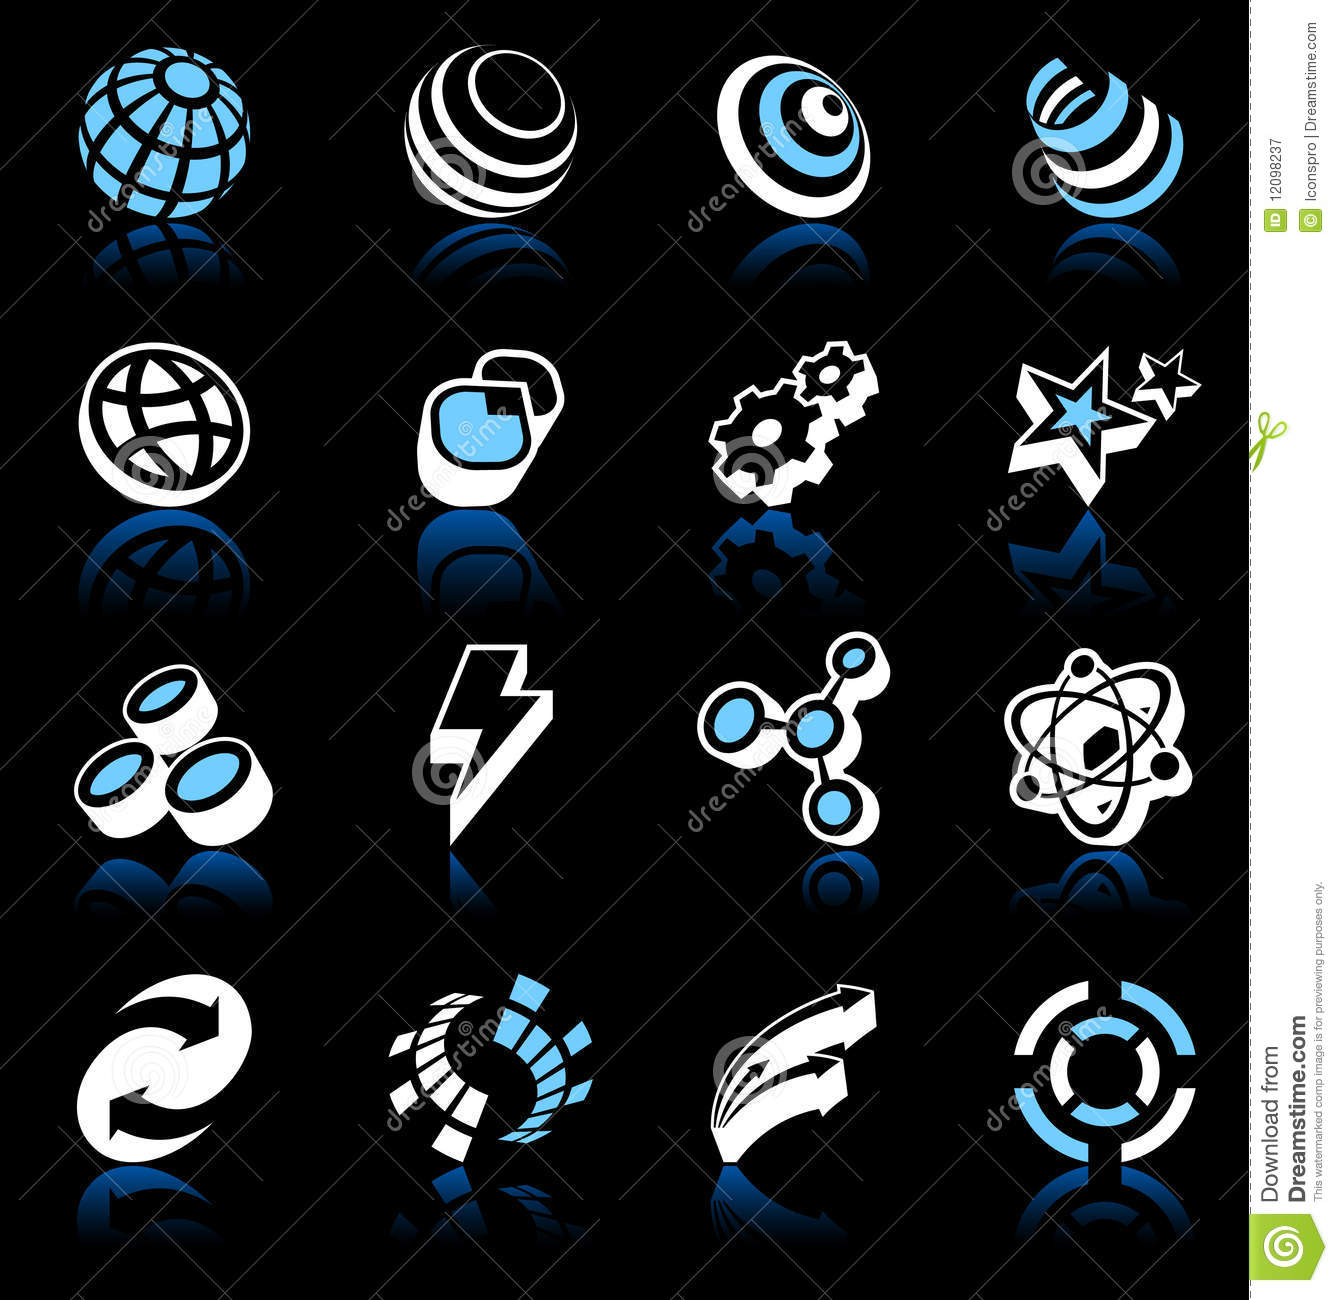 Modern Design Elements Collection On Black Stock Vector